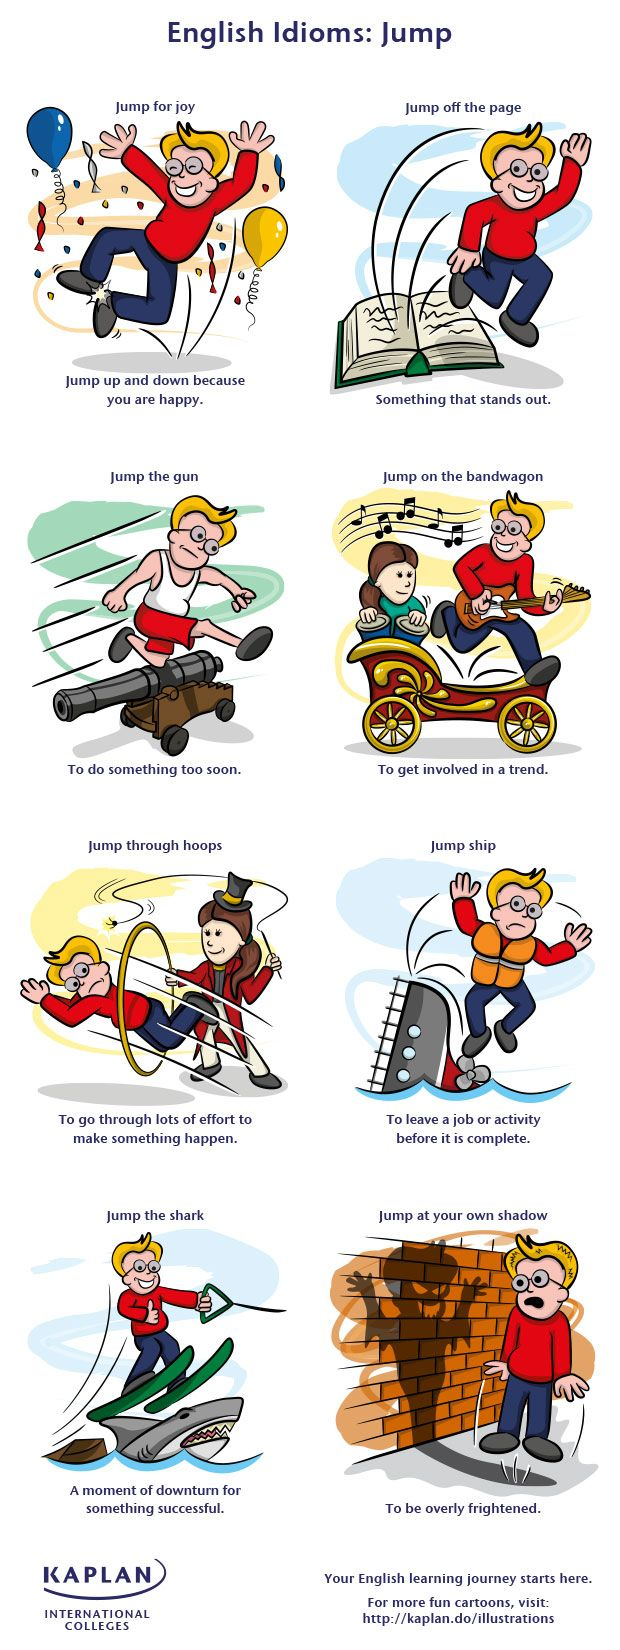 "english idioms Here are 15 common english idioms and phrases that will enrich your english vocabulary and make you sound like a native speaker in no time 1 'the best of both worlds' – means you can enjoy two different opportunities at the same time ""by working part-time and looking after her kids two days a week she managed to get the best of both worlds."